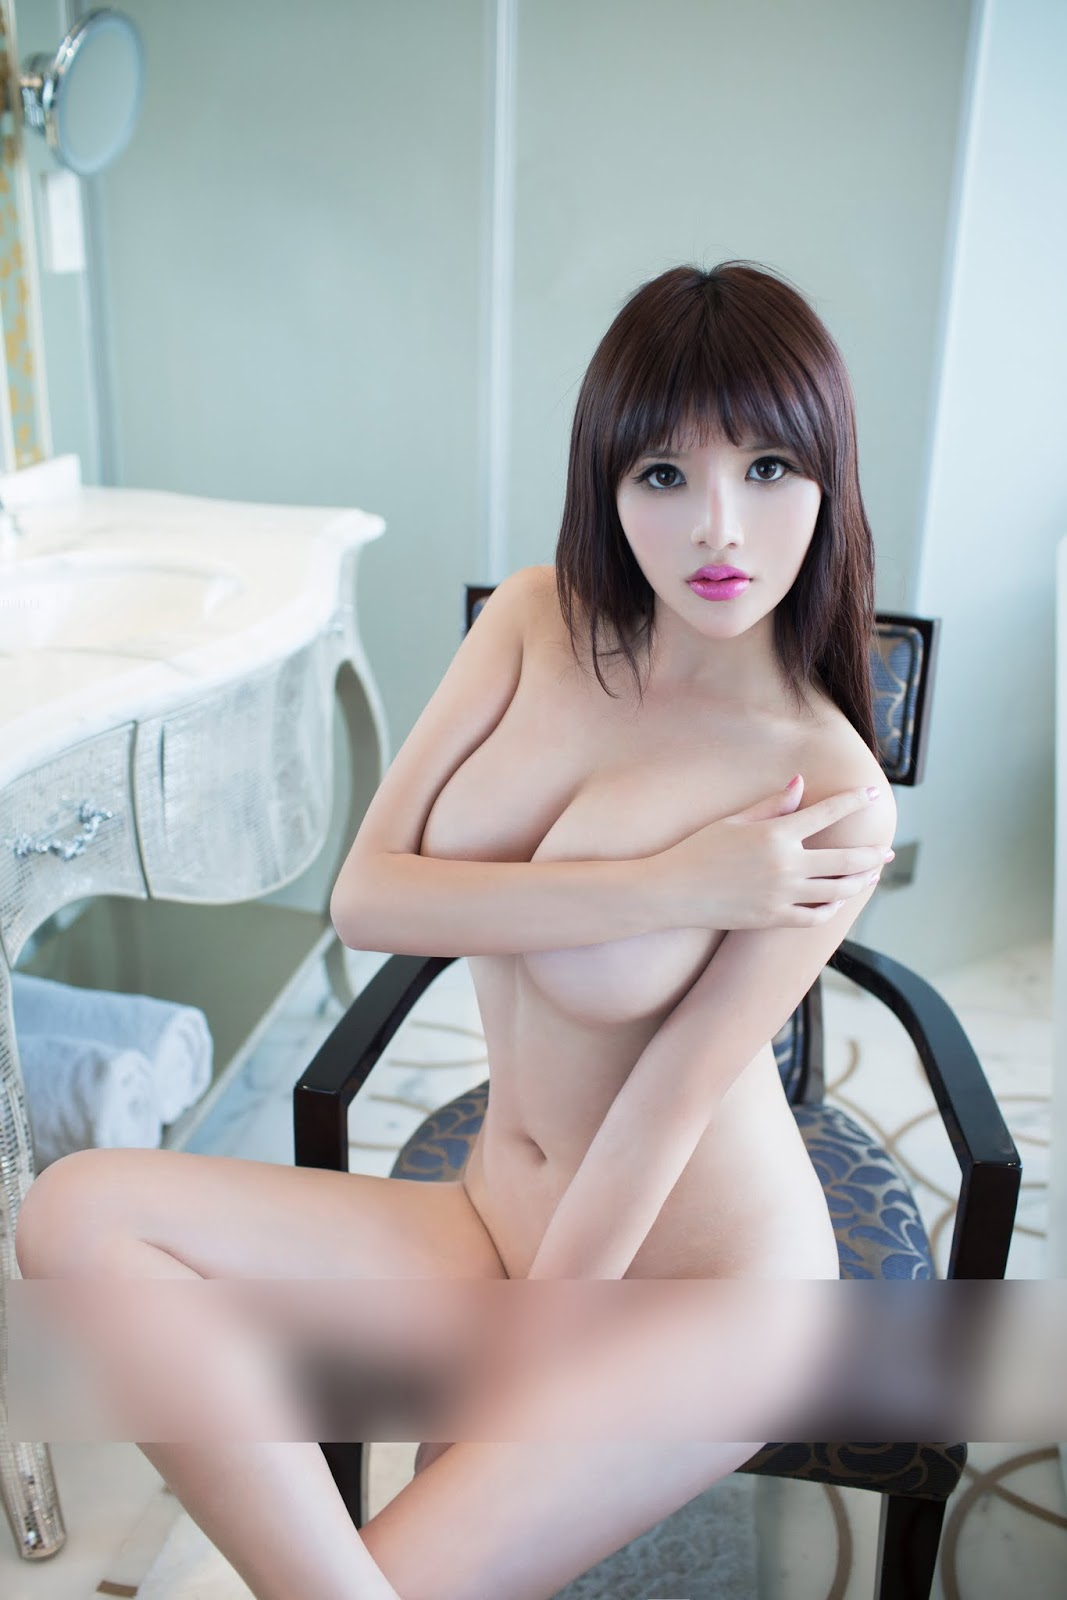 36 - Hot Girl Big TIts TUIGIRL NO.38 Asian Naked